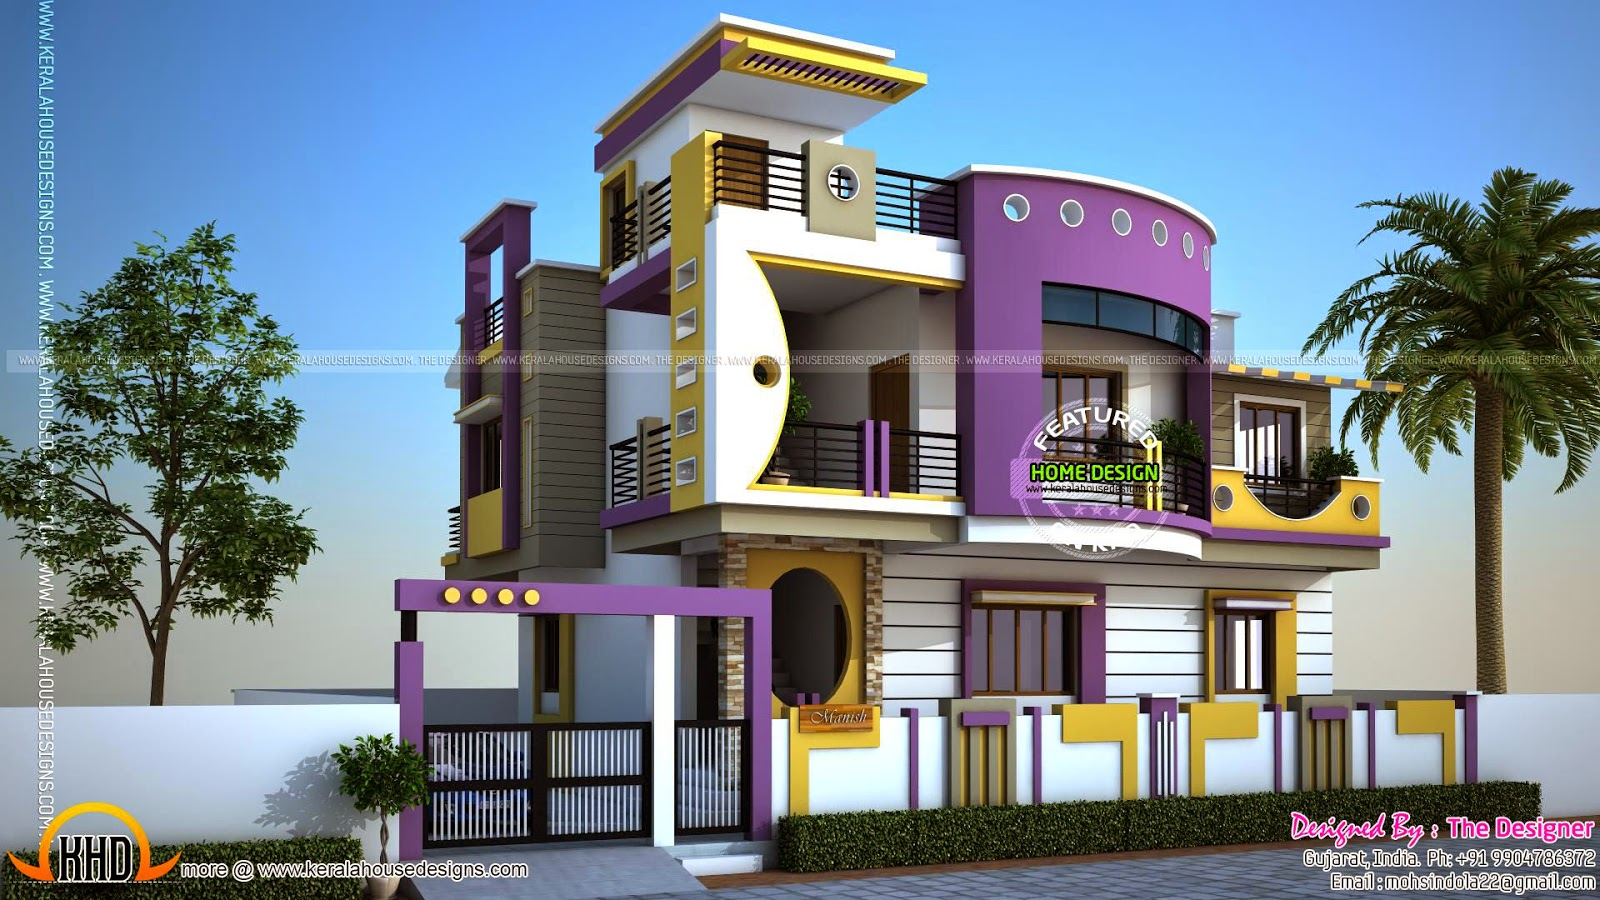 House exterior designs in contemporary style kerala home for Building design outside